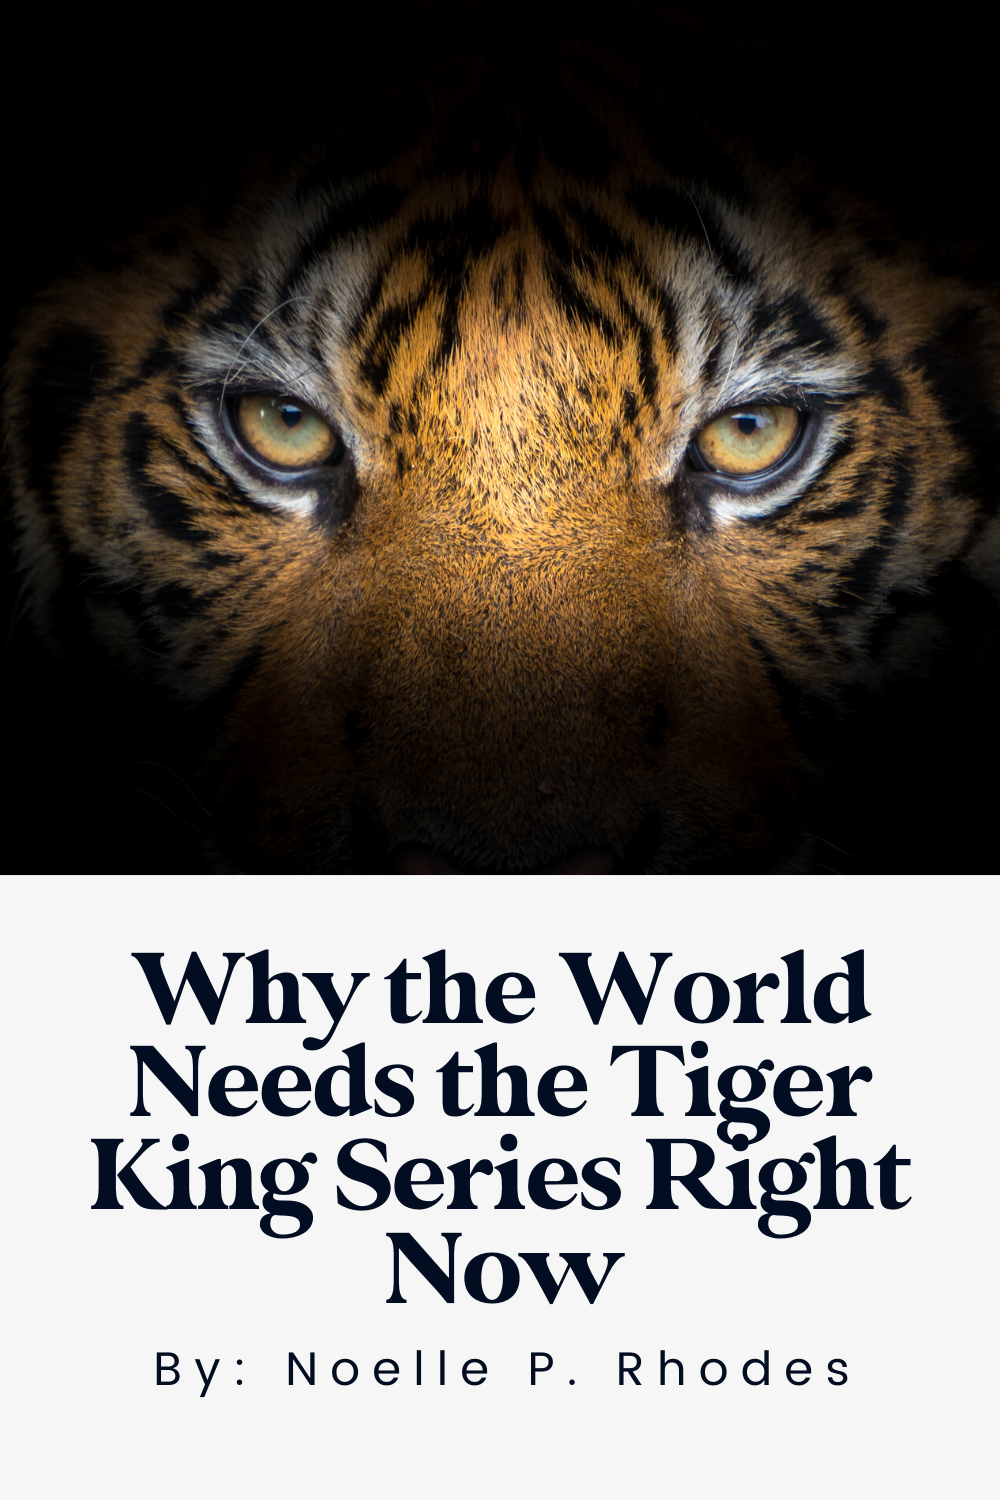 Why Netflix's Tiger King Series is getting us through the